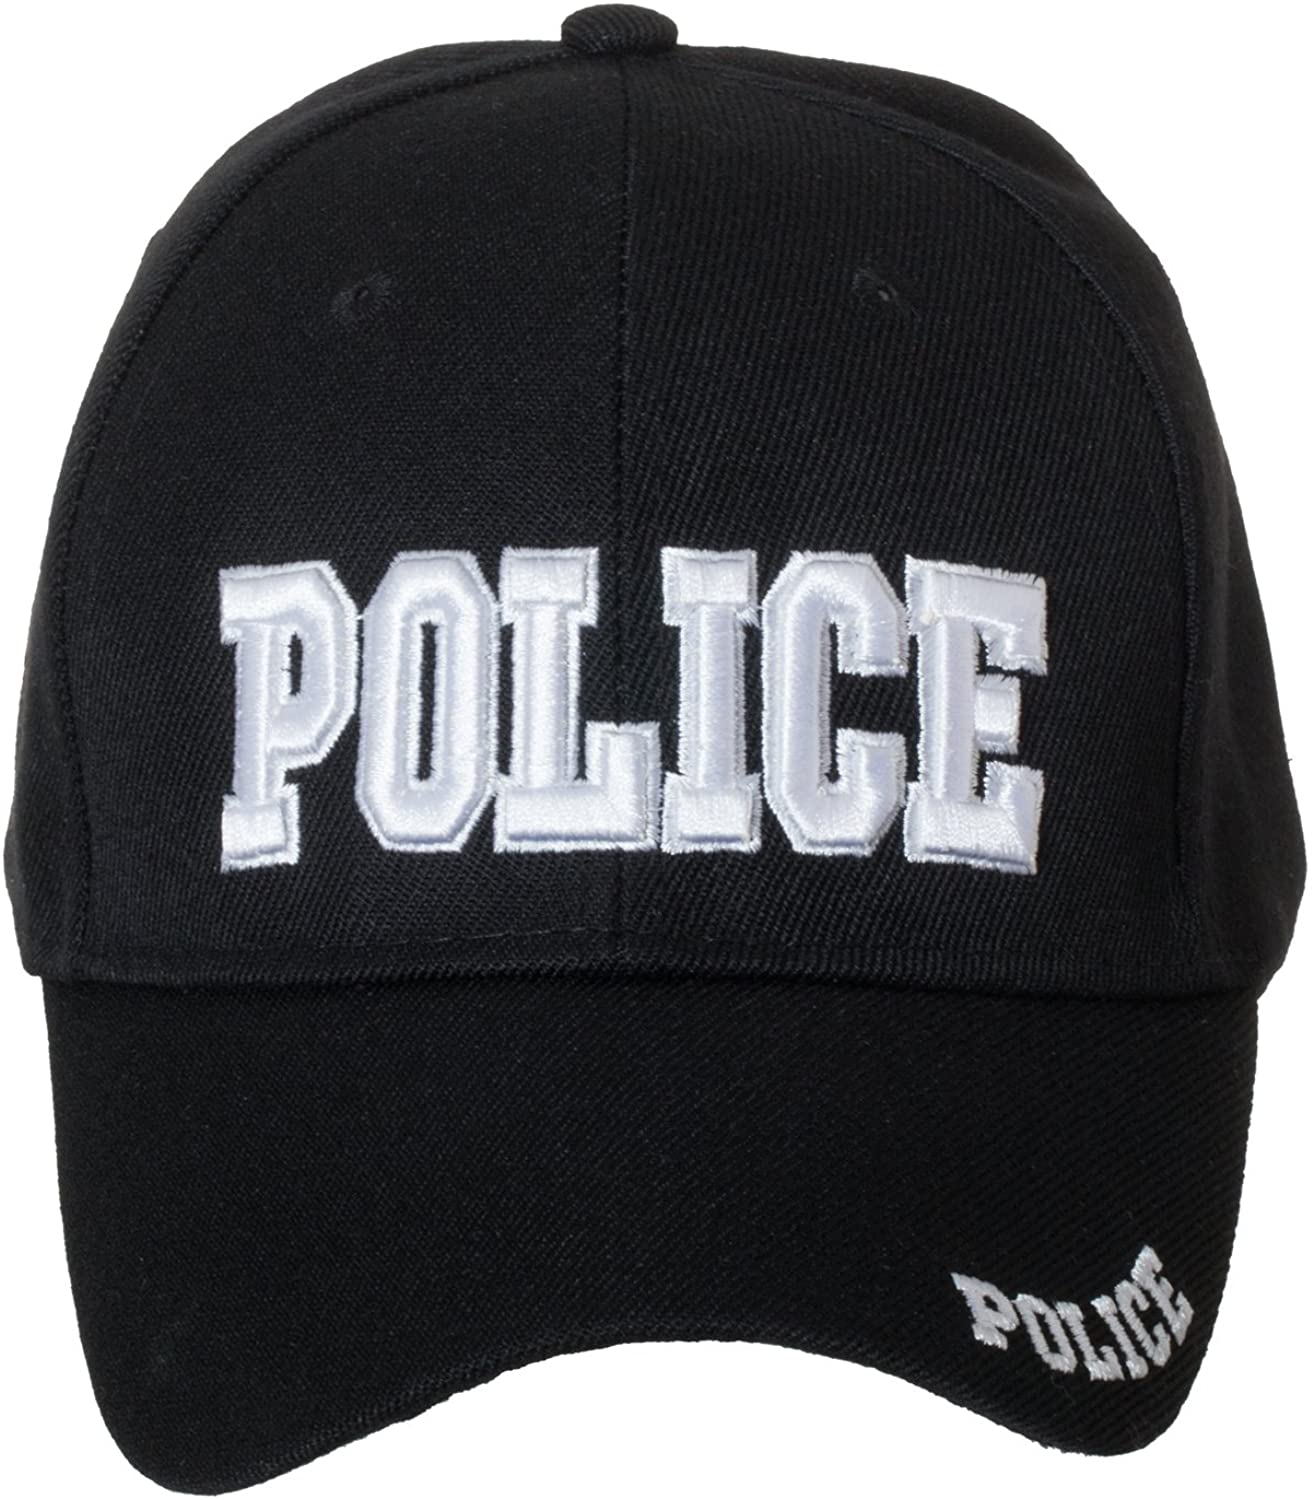 Deluxe Black Embroidered Law Enforcement/Security Novelty Baseball Caps